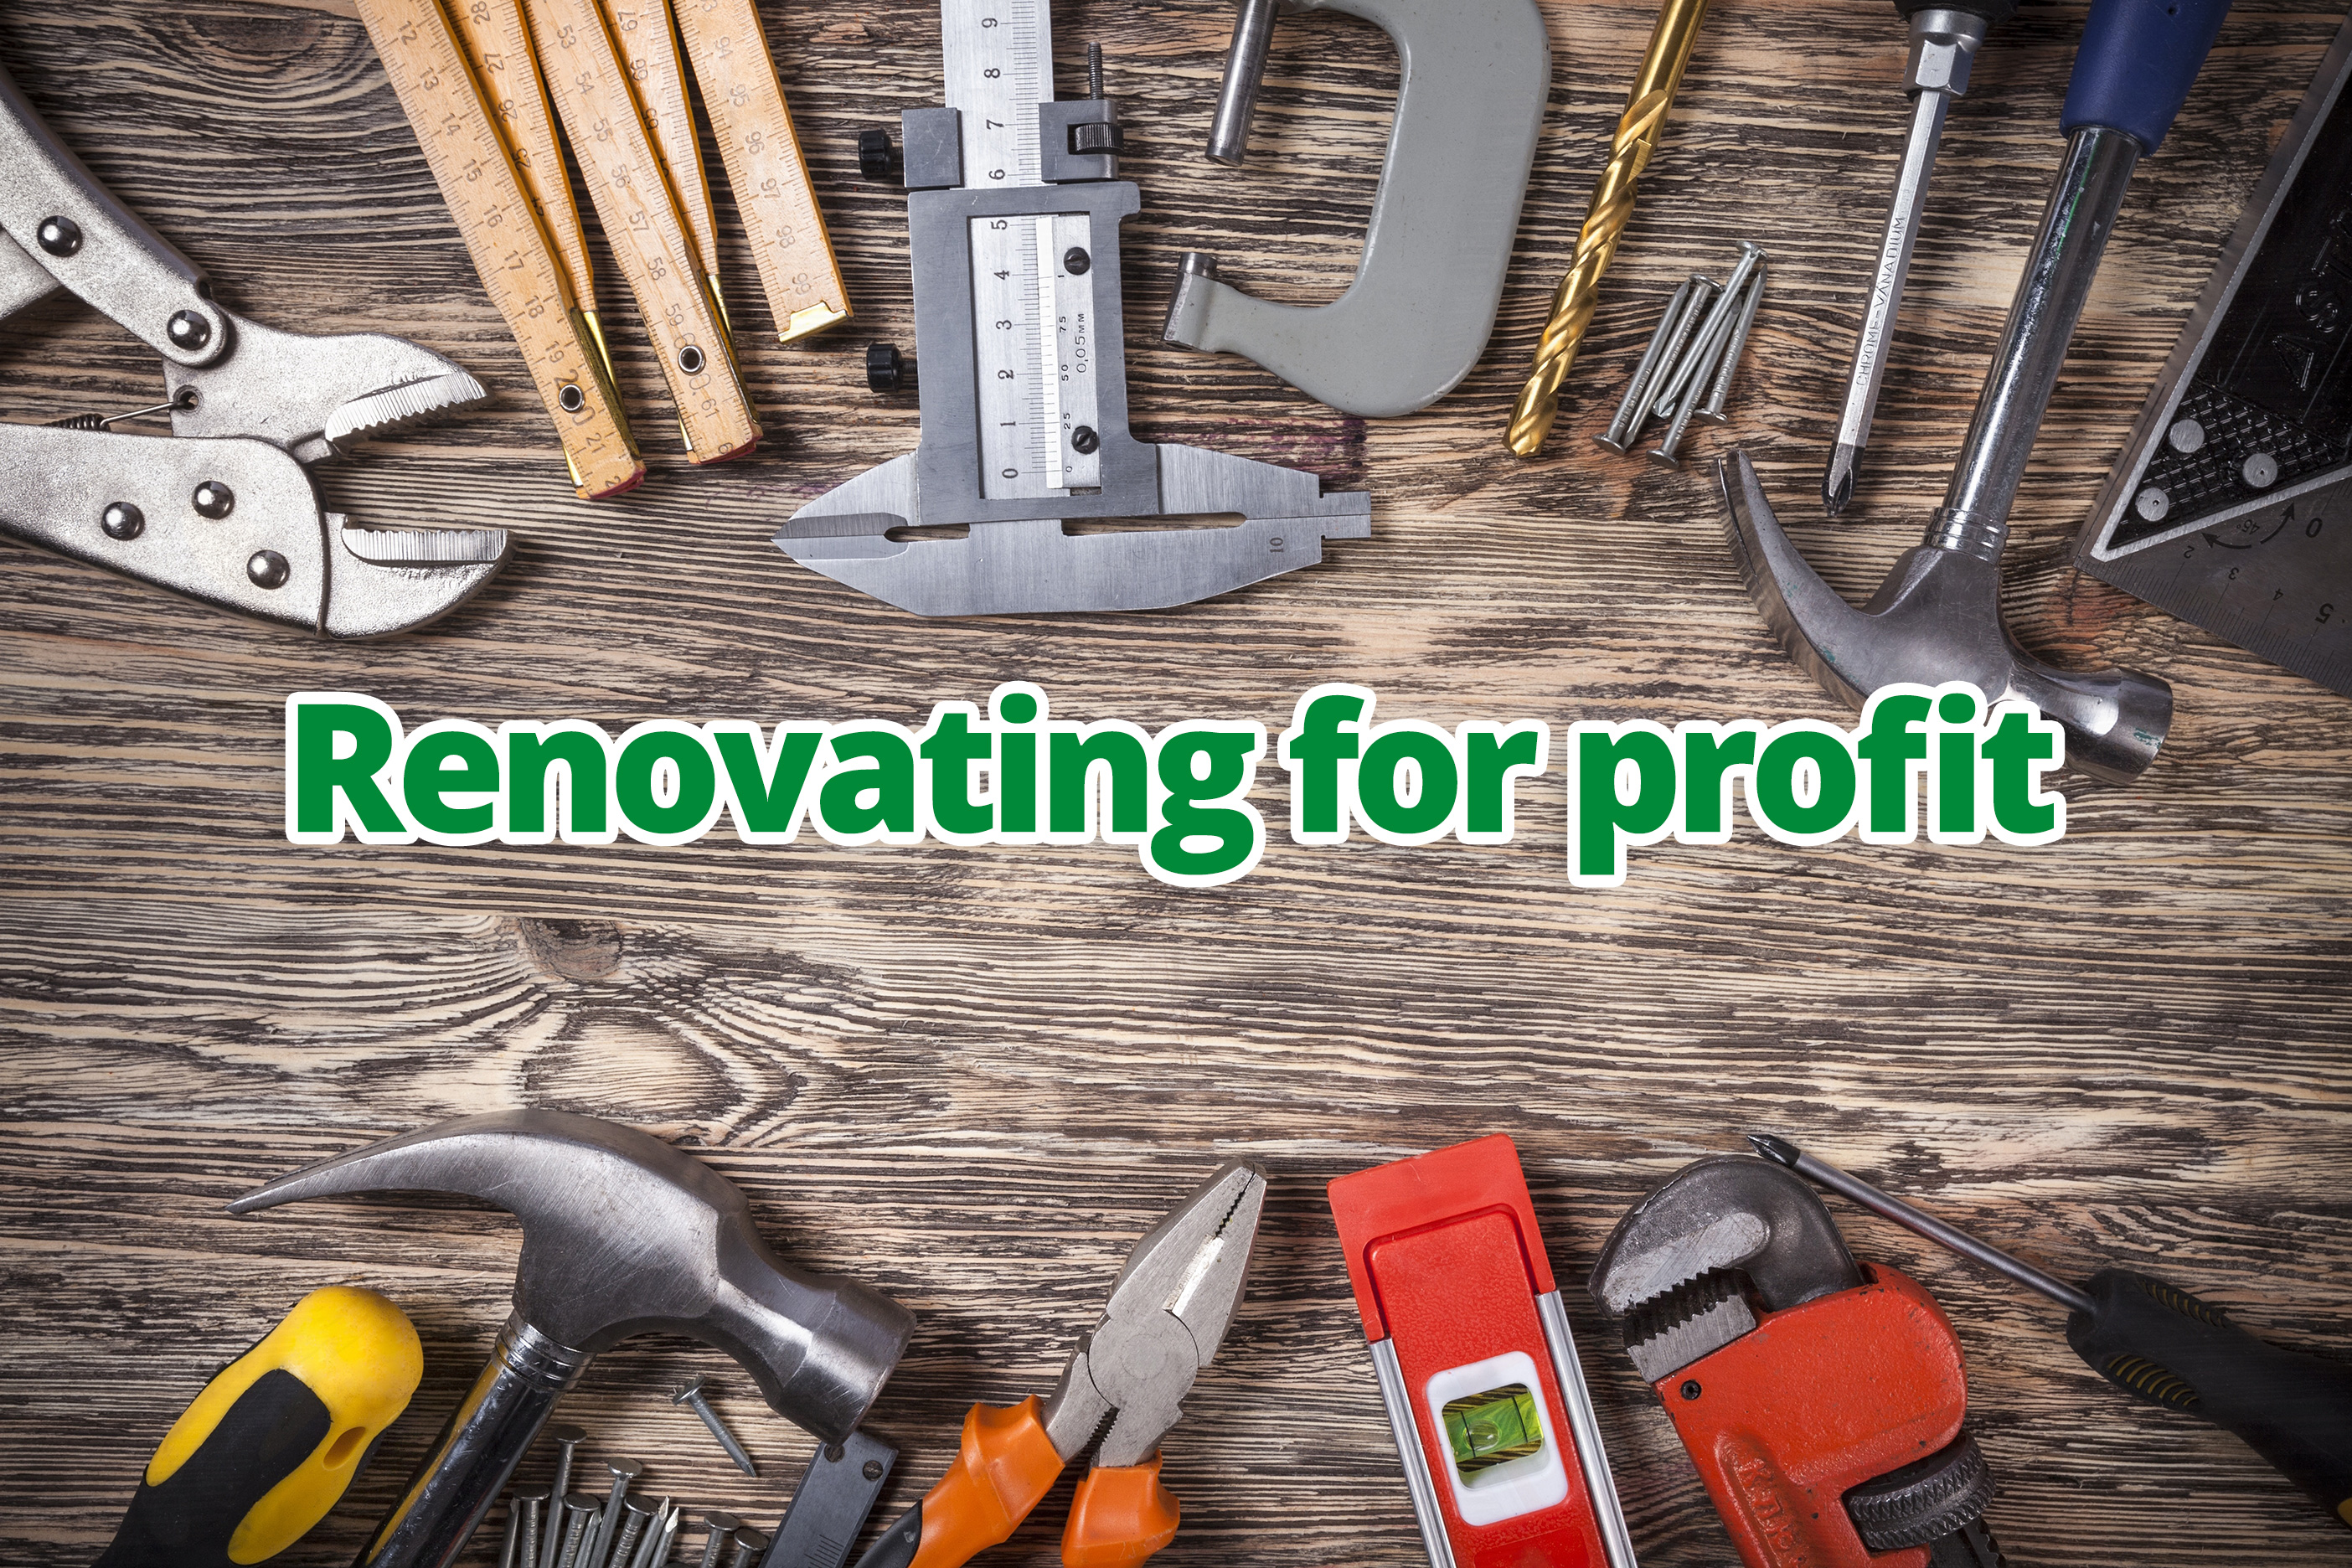 Renovating for profit: 5 tips to minimise your risks and maximise your gains